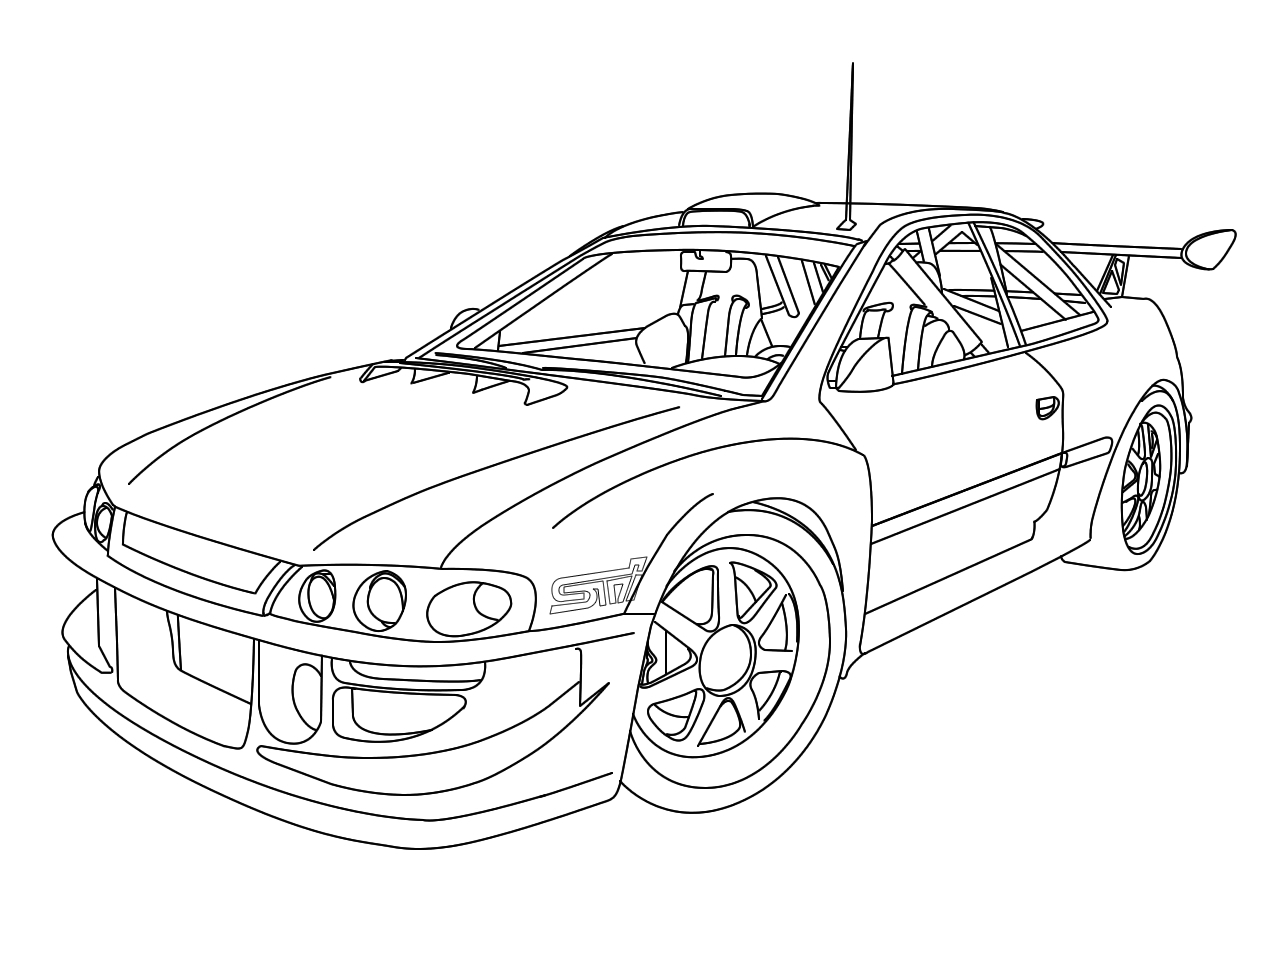 1280x960 Outline Drawing Of Car 202 Best Images About Cars To Draw